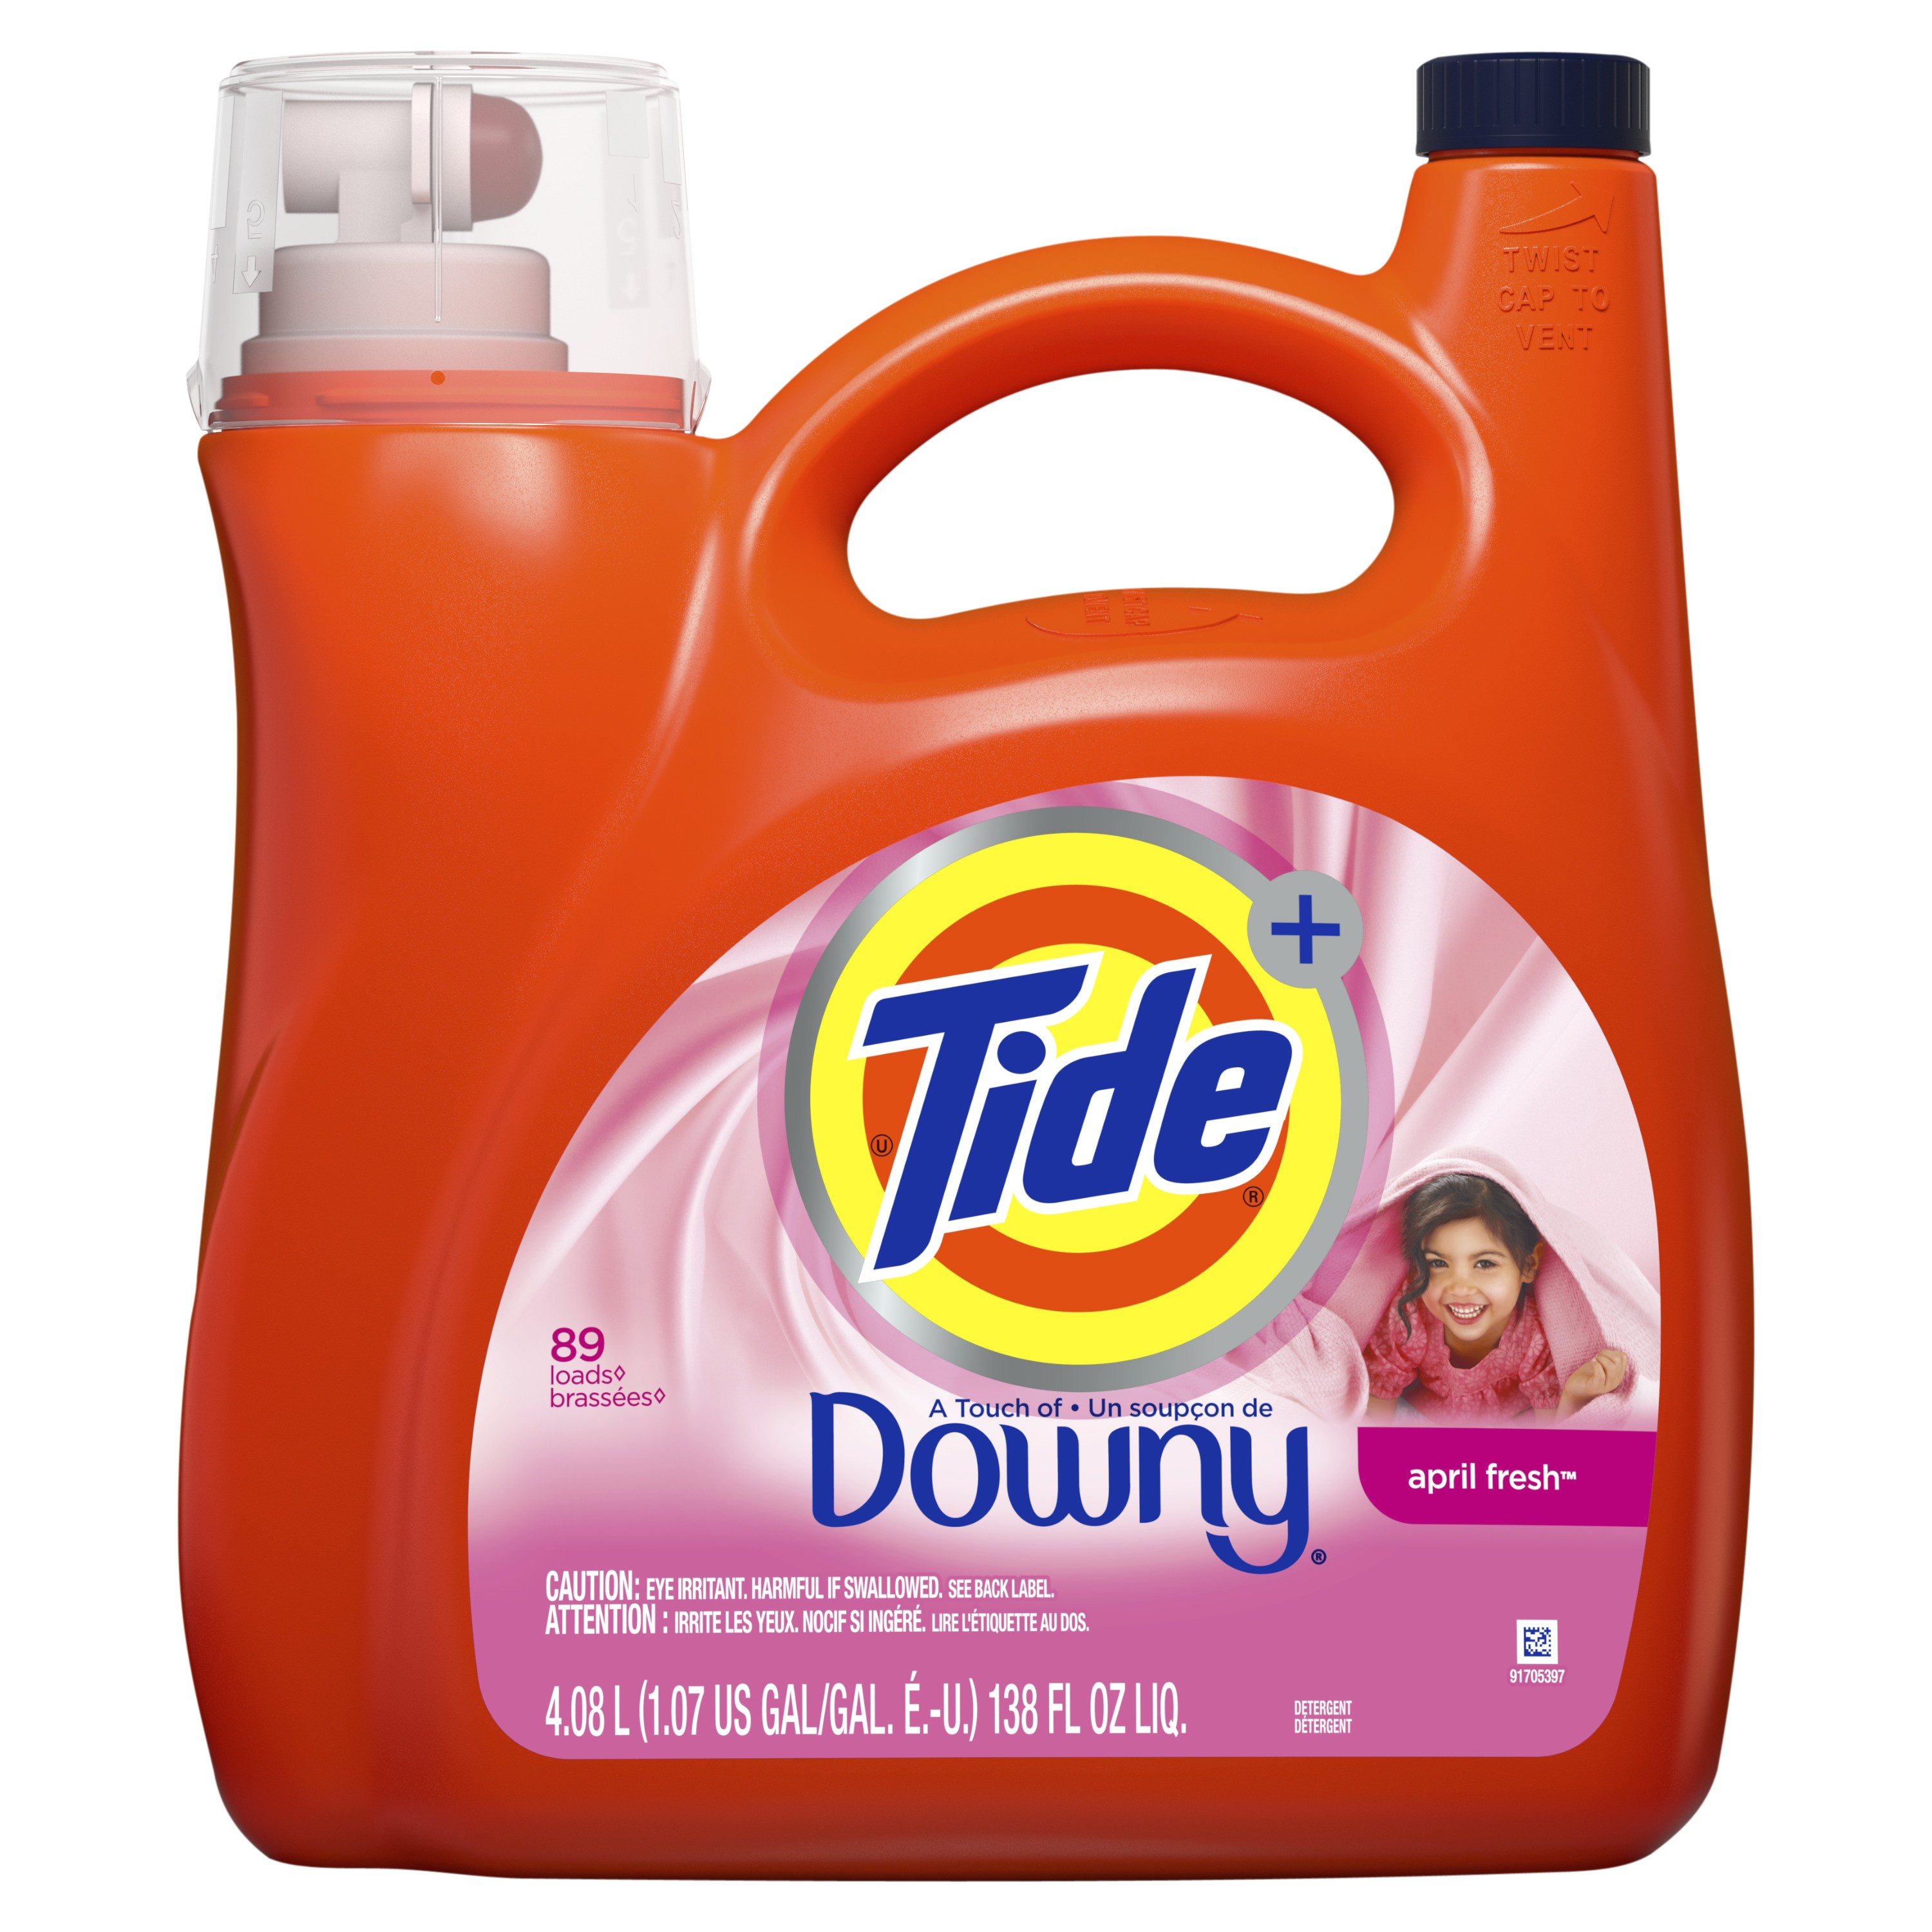 tide liquid laundry detergent with a touch of downy april fresh 89 loads 138 fl oz walmart com